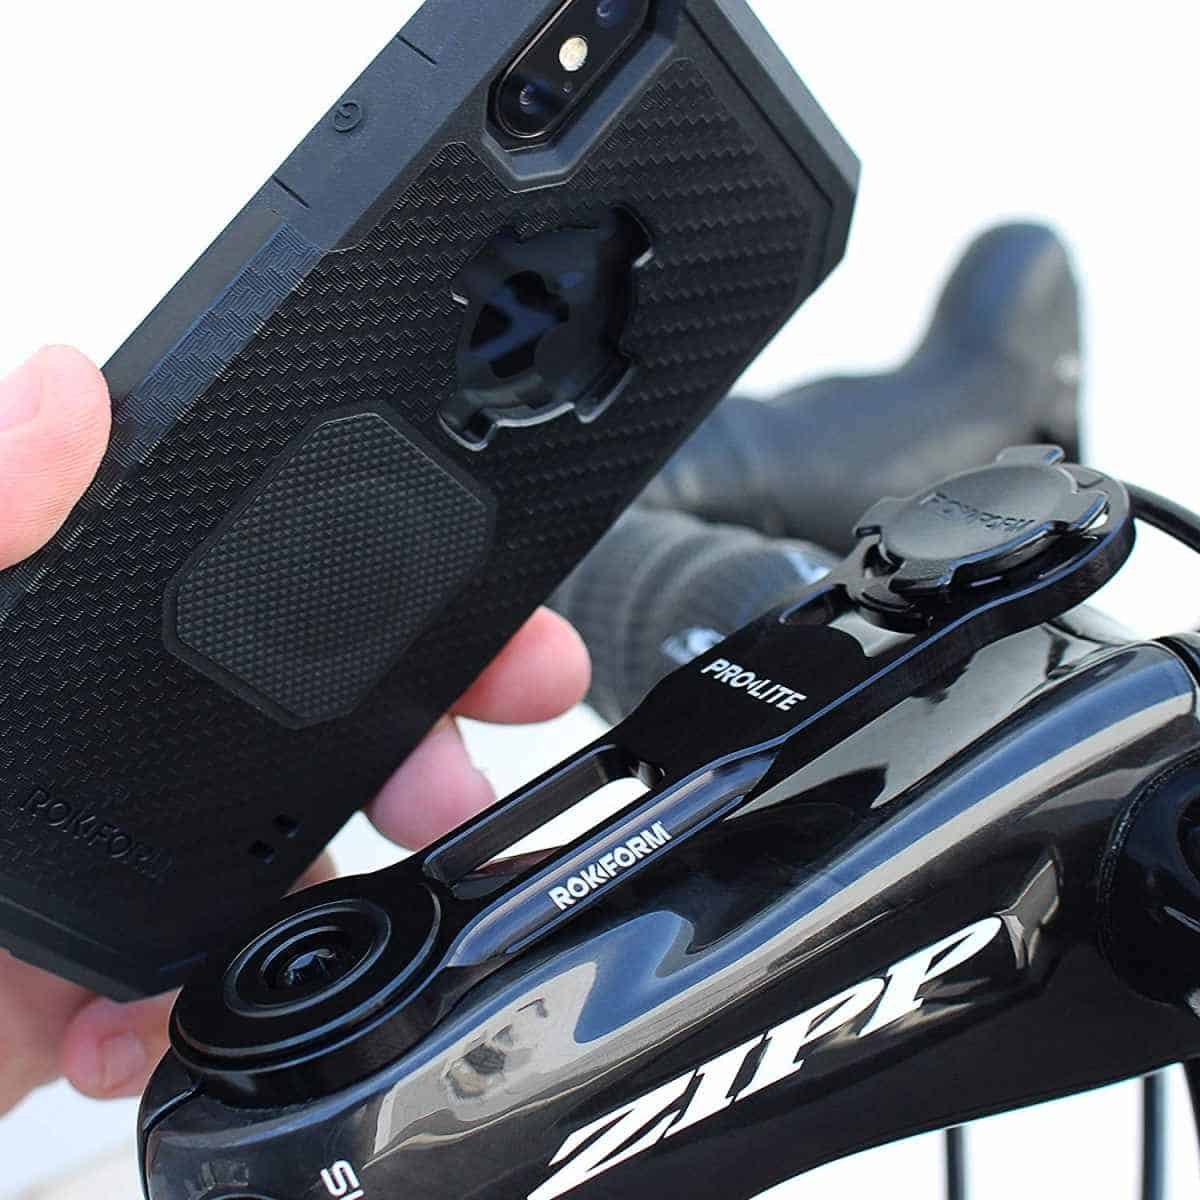 Rokform Pro Series Bike Mount and Case | Top Rated iPhone Accessories